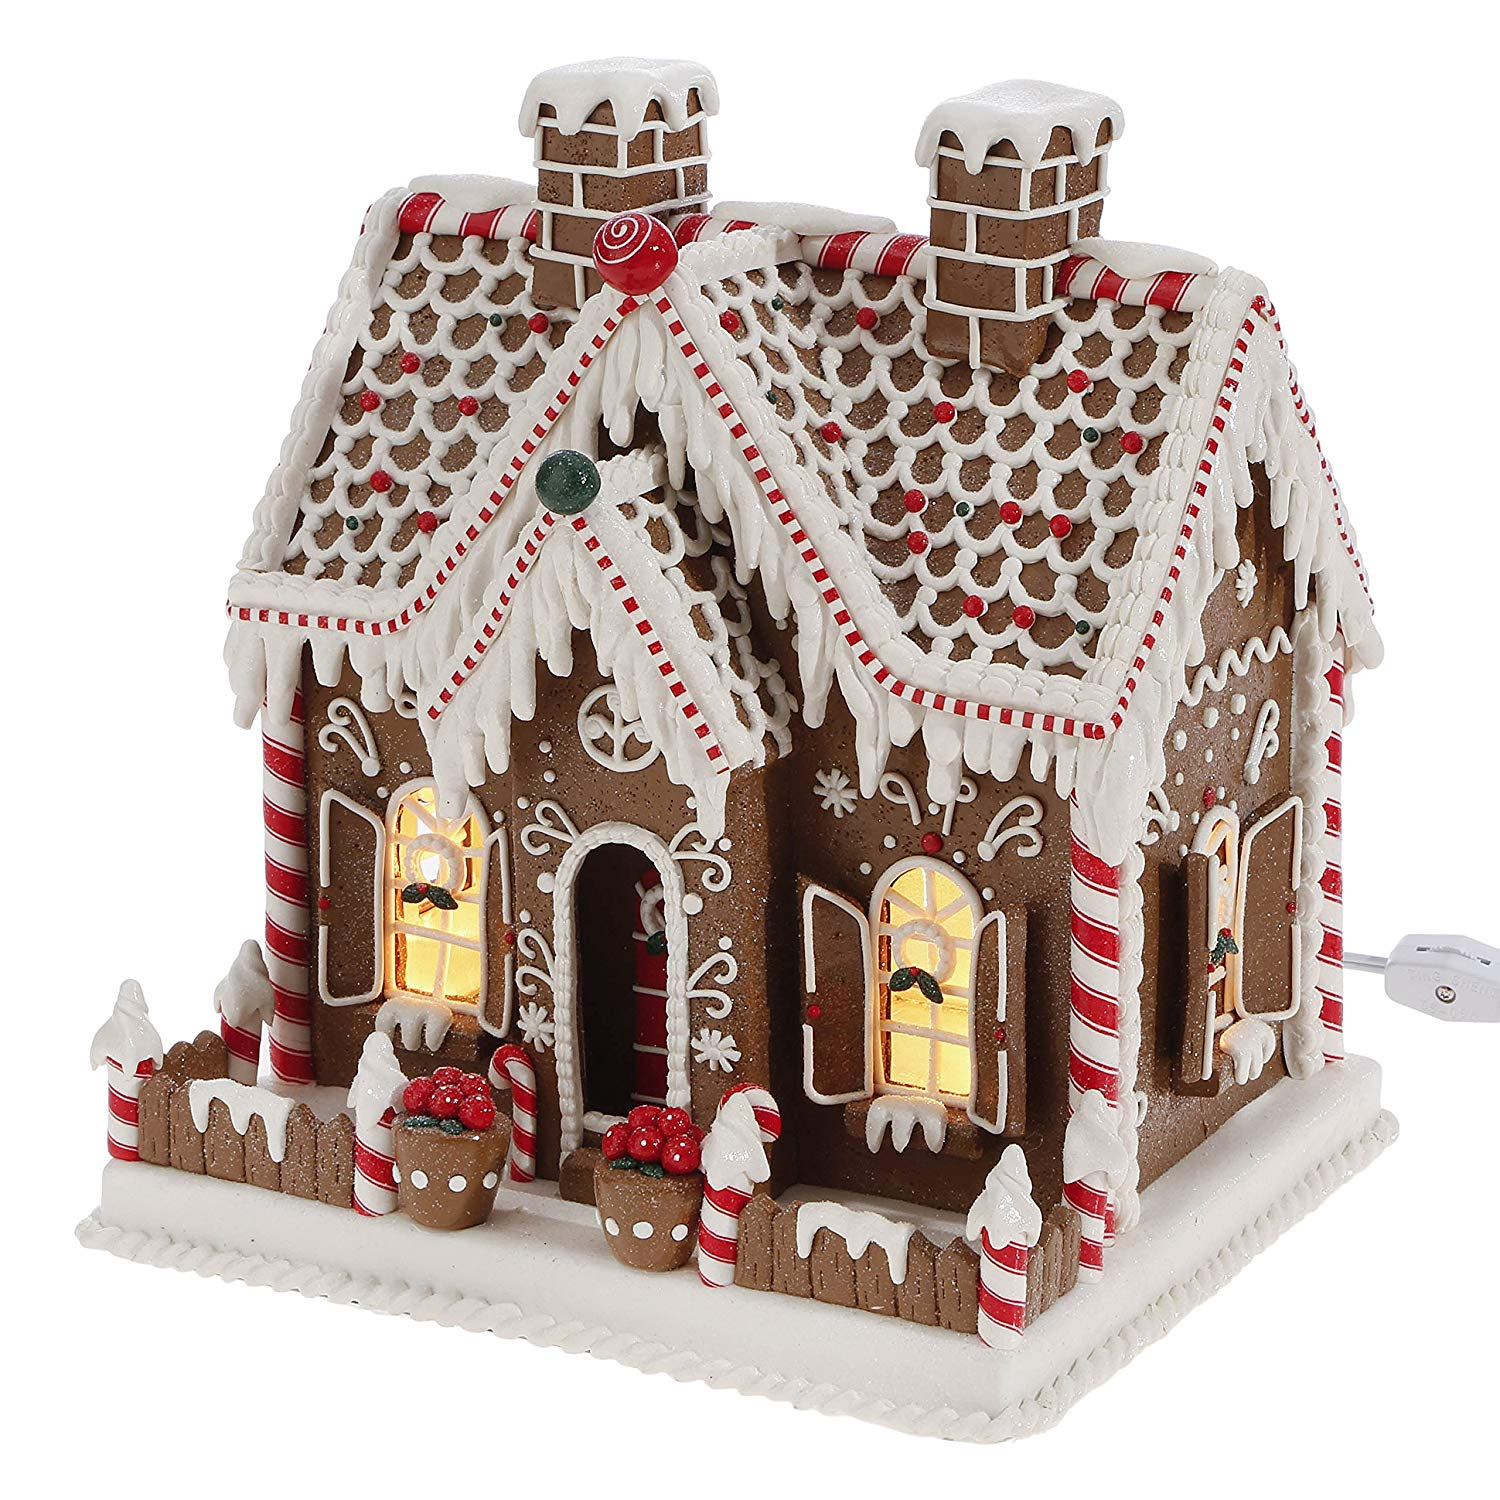 11 Inch Lighted Gingerbread House Holiday Decoration Tabletop